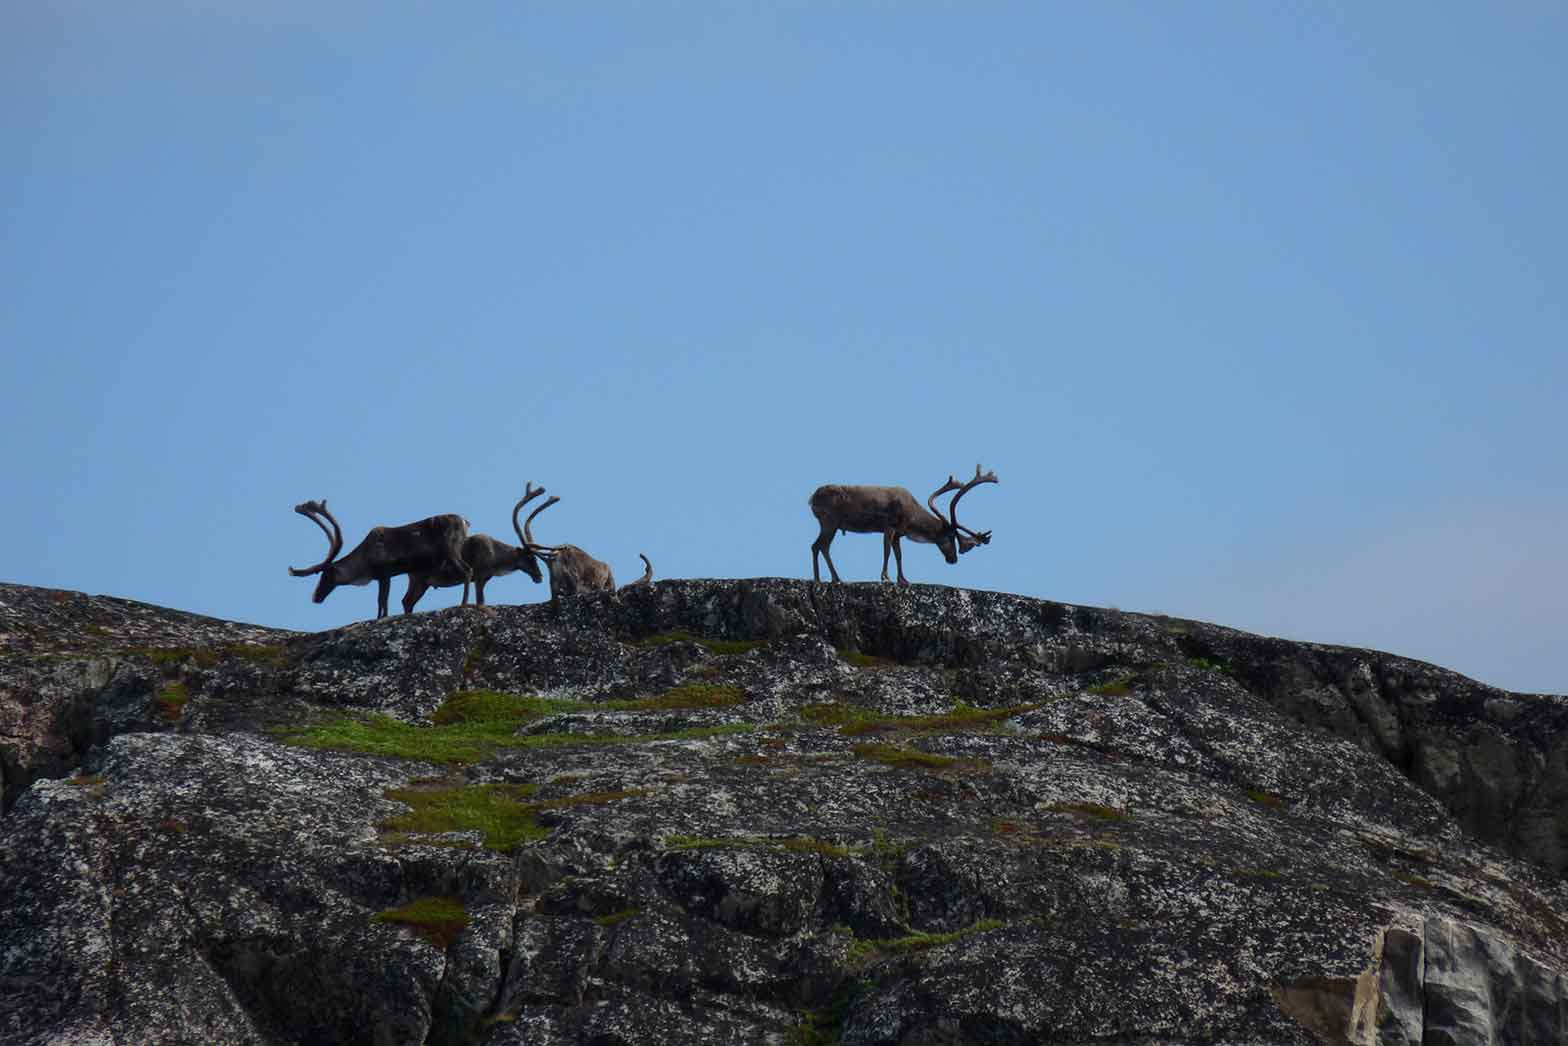 Reindeers near the village of Kirkenes